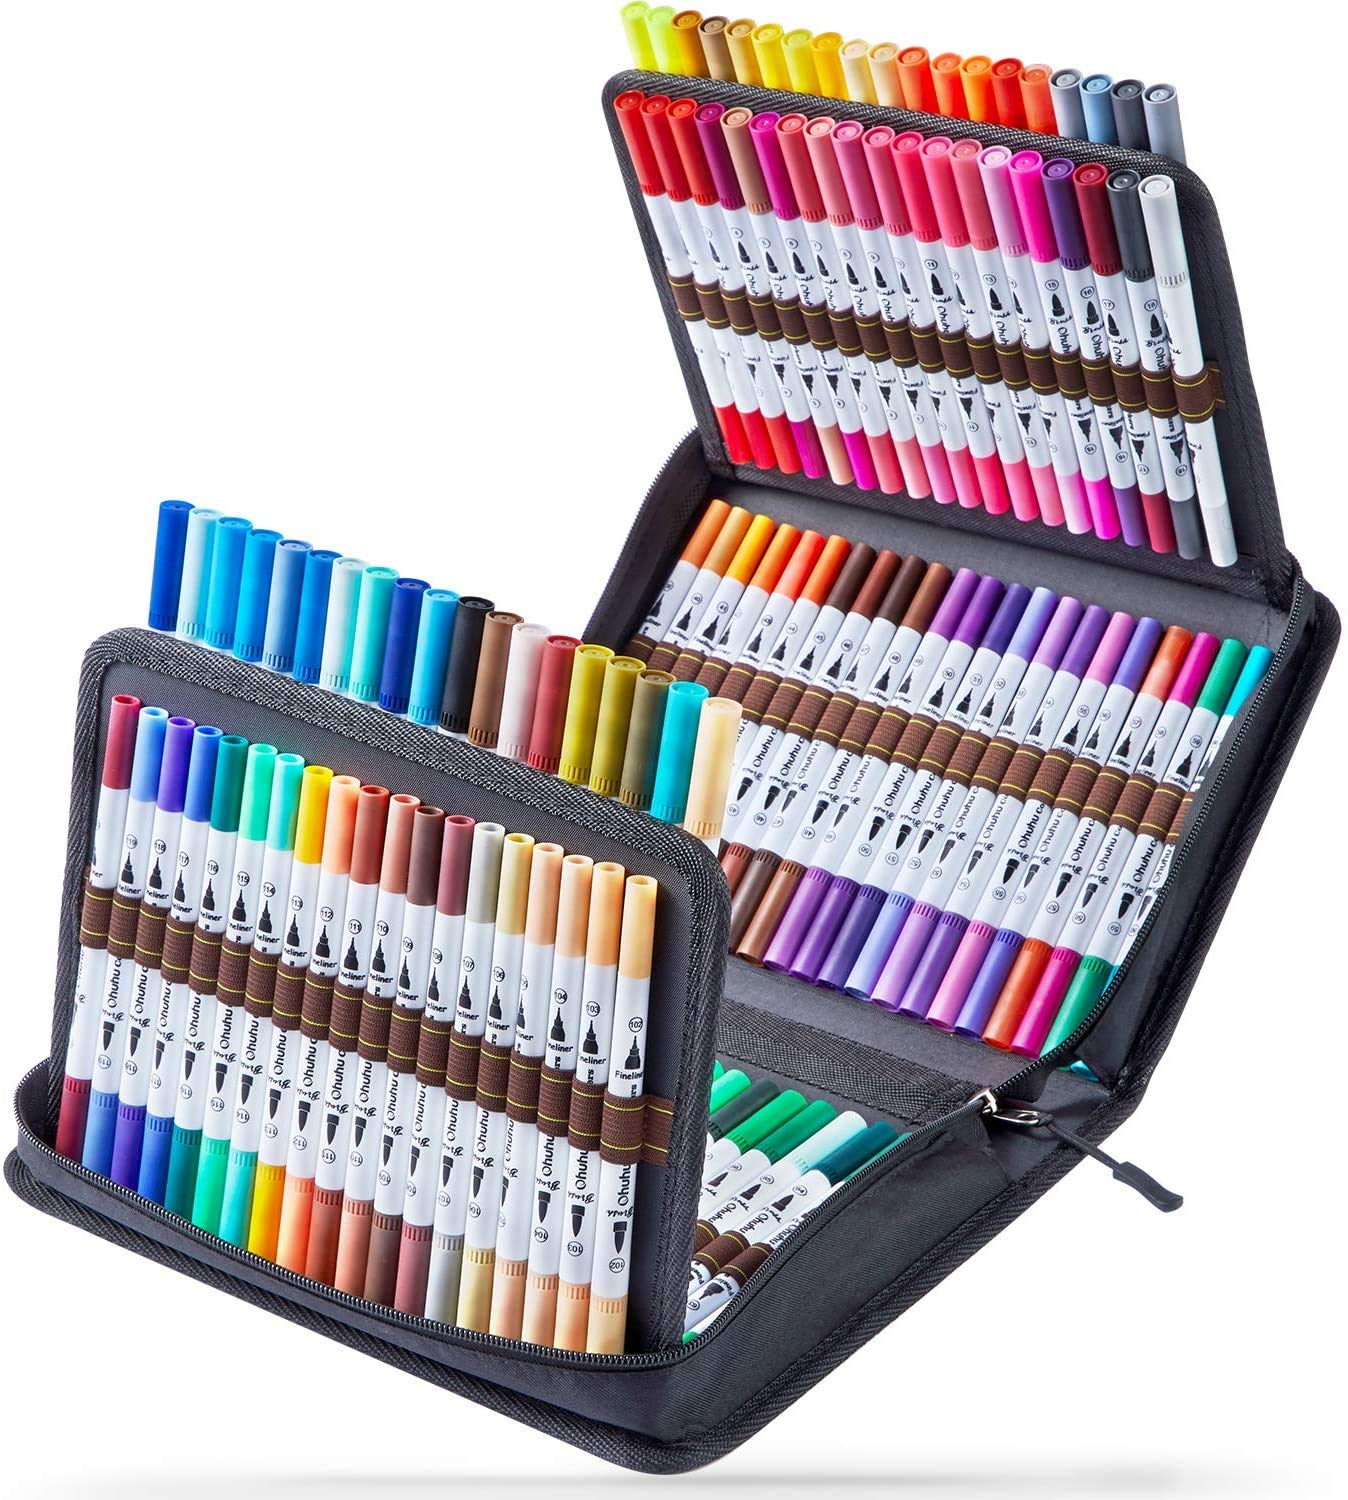 120 Colors Art Markers Set, Ohuhu Dual Tips Coloring Brush Fineliner Color Marker Pens, Water Based Marker for Calligraphy Drawing Sketching Coloring Bullet Journal Back To School Mother's Day Gift